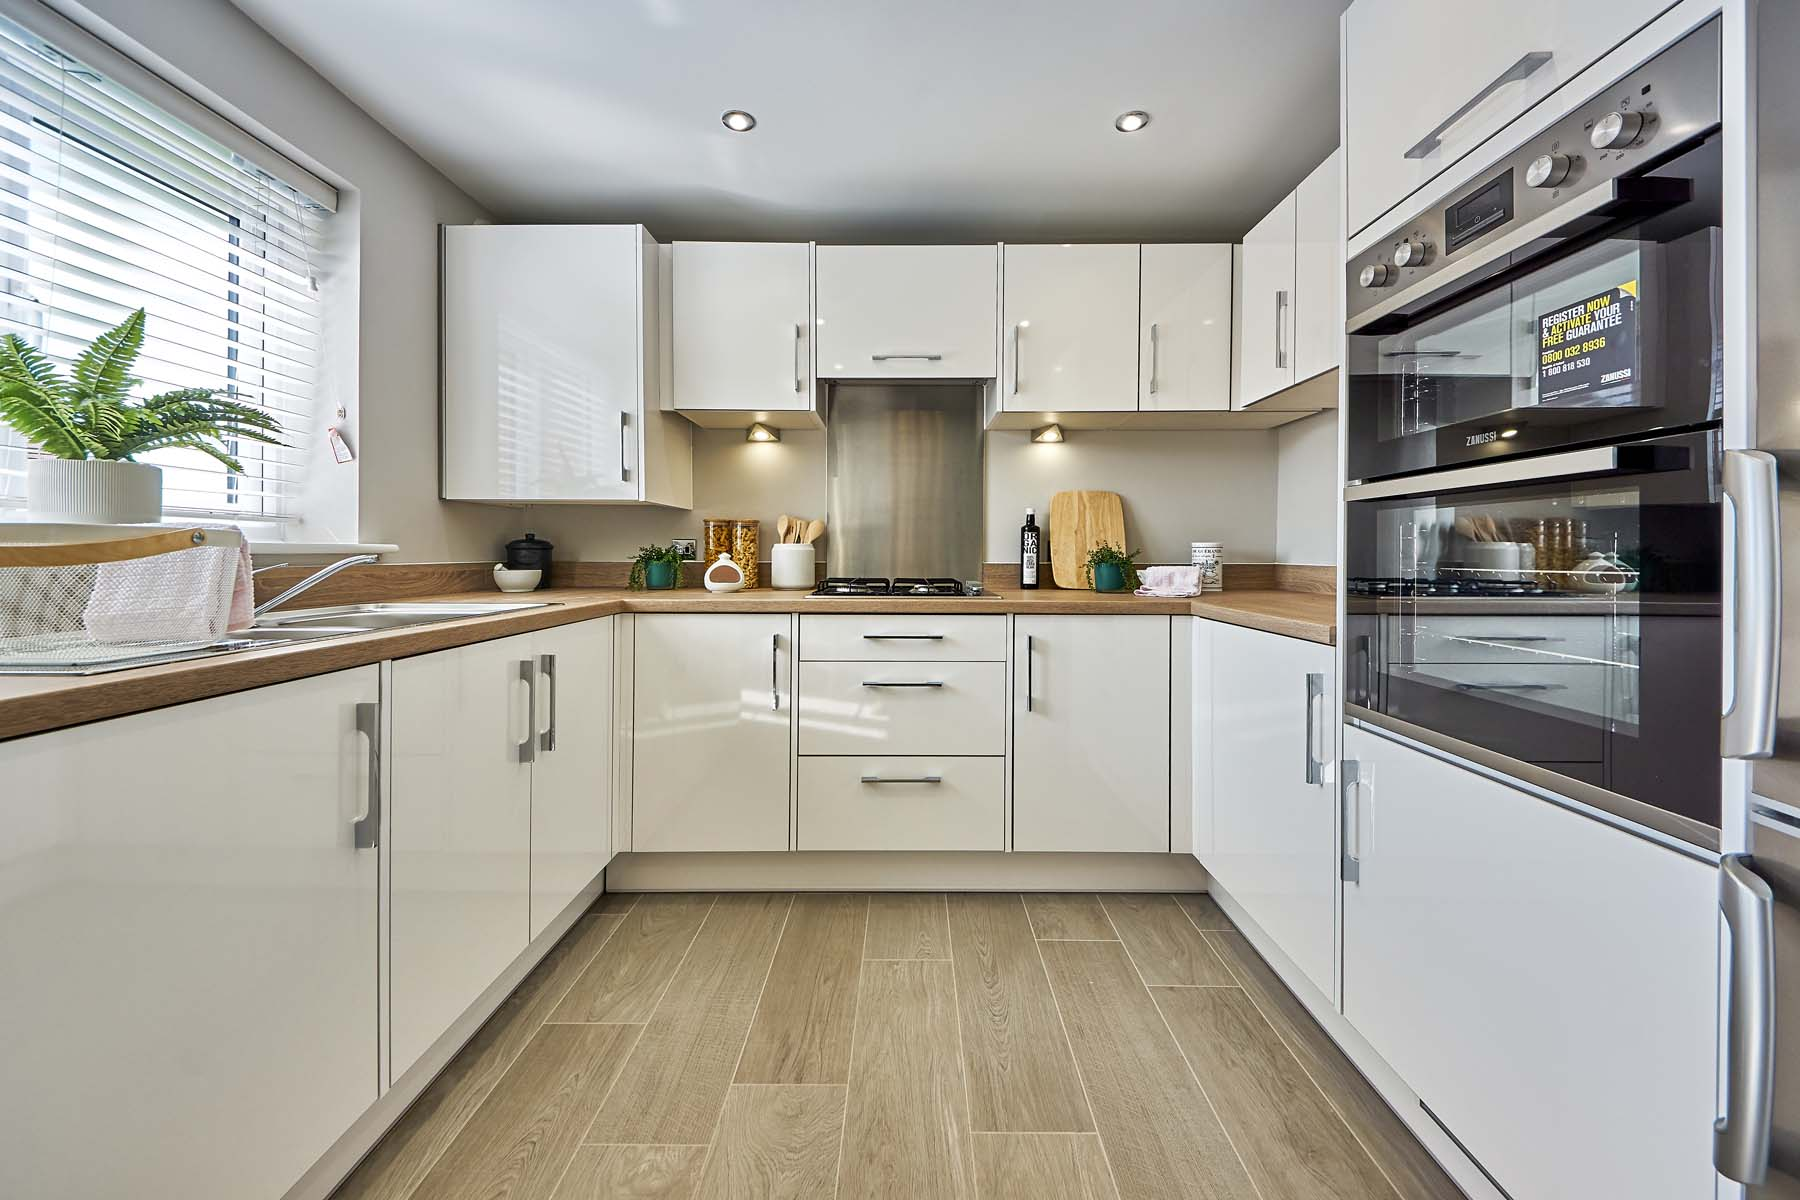 Kitchen - Catesby-Gosford-SH-photography-Aug19-5006